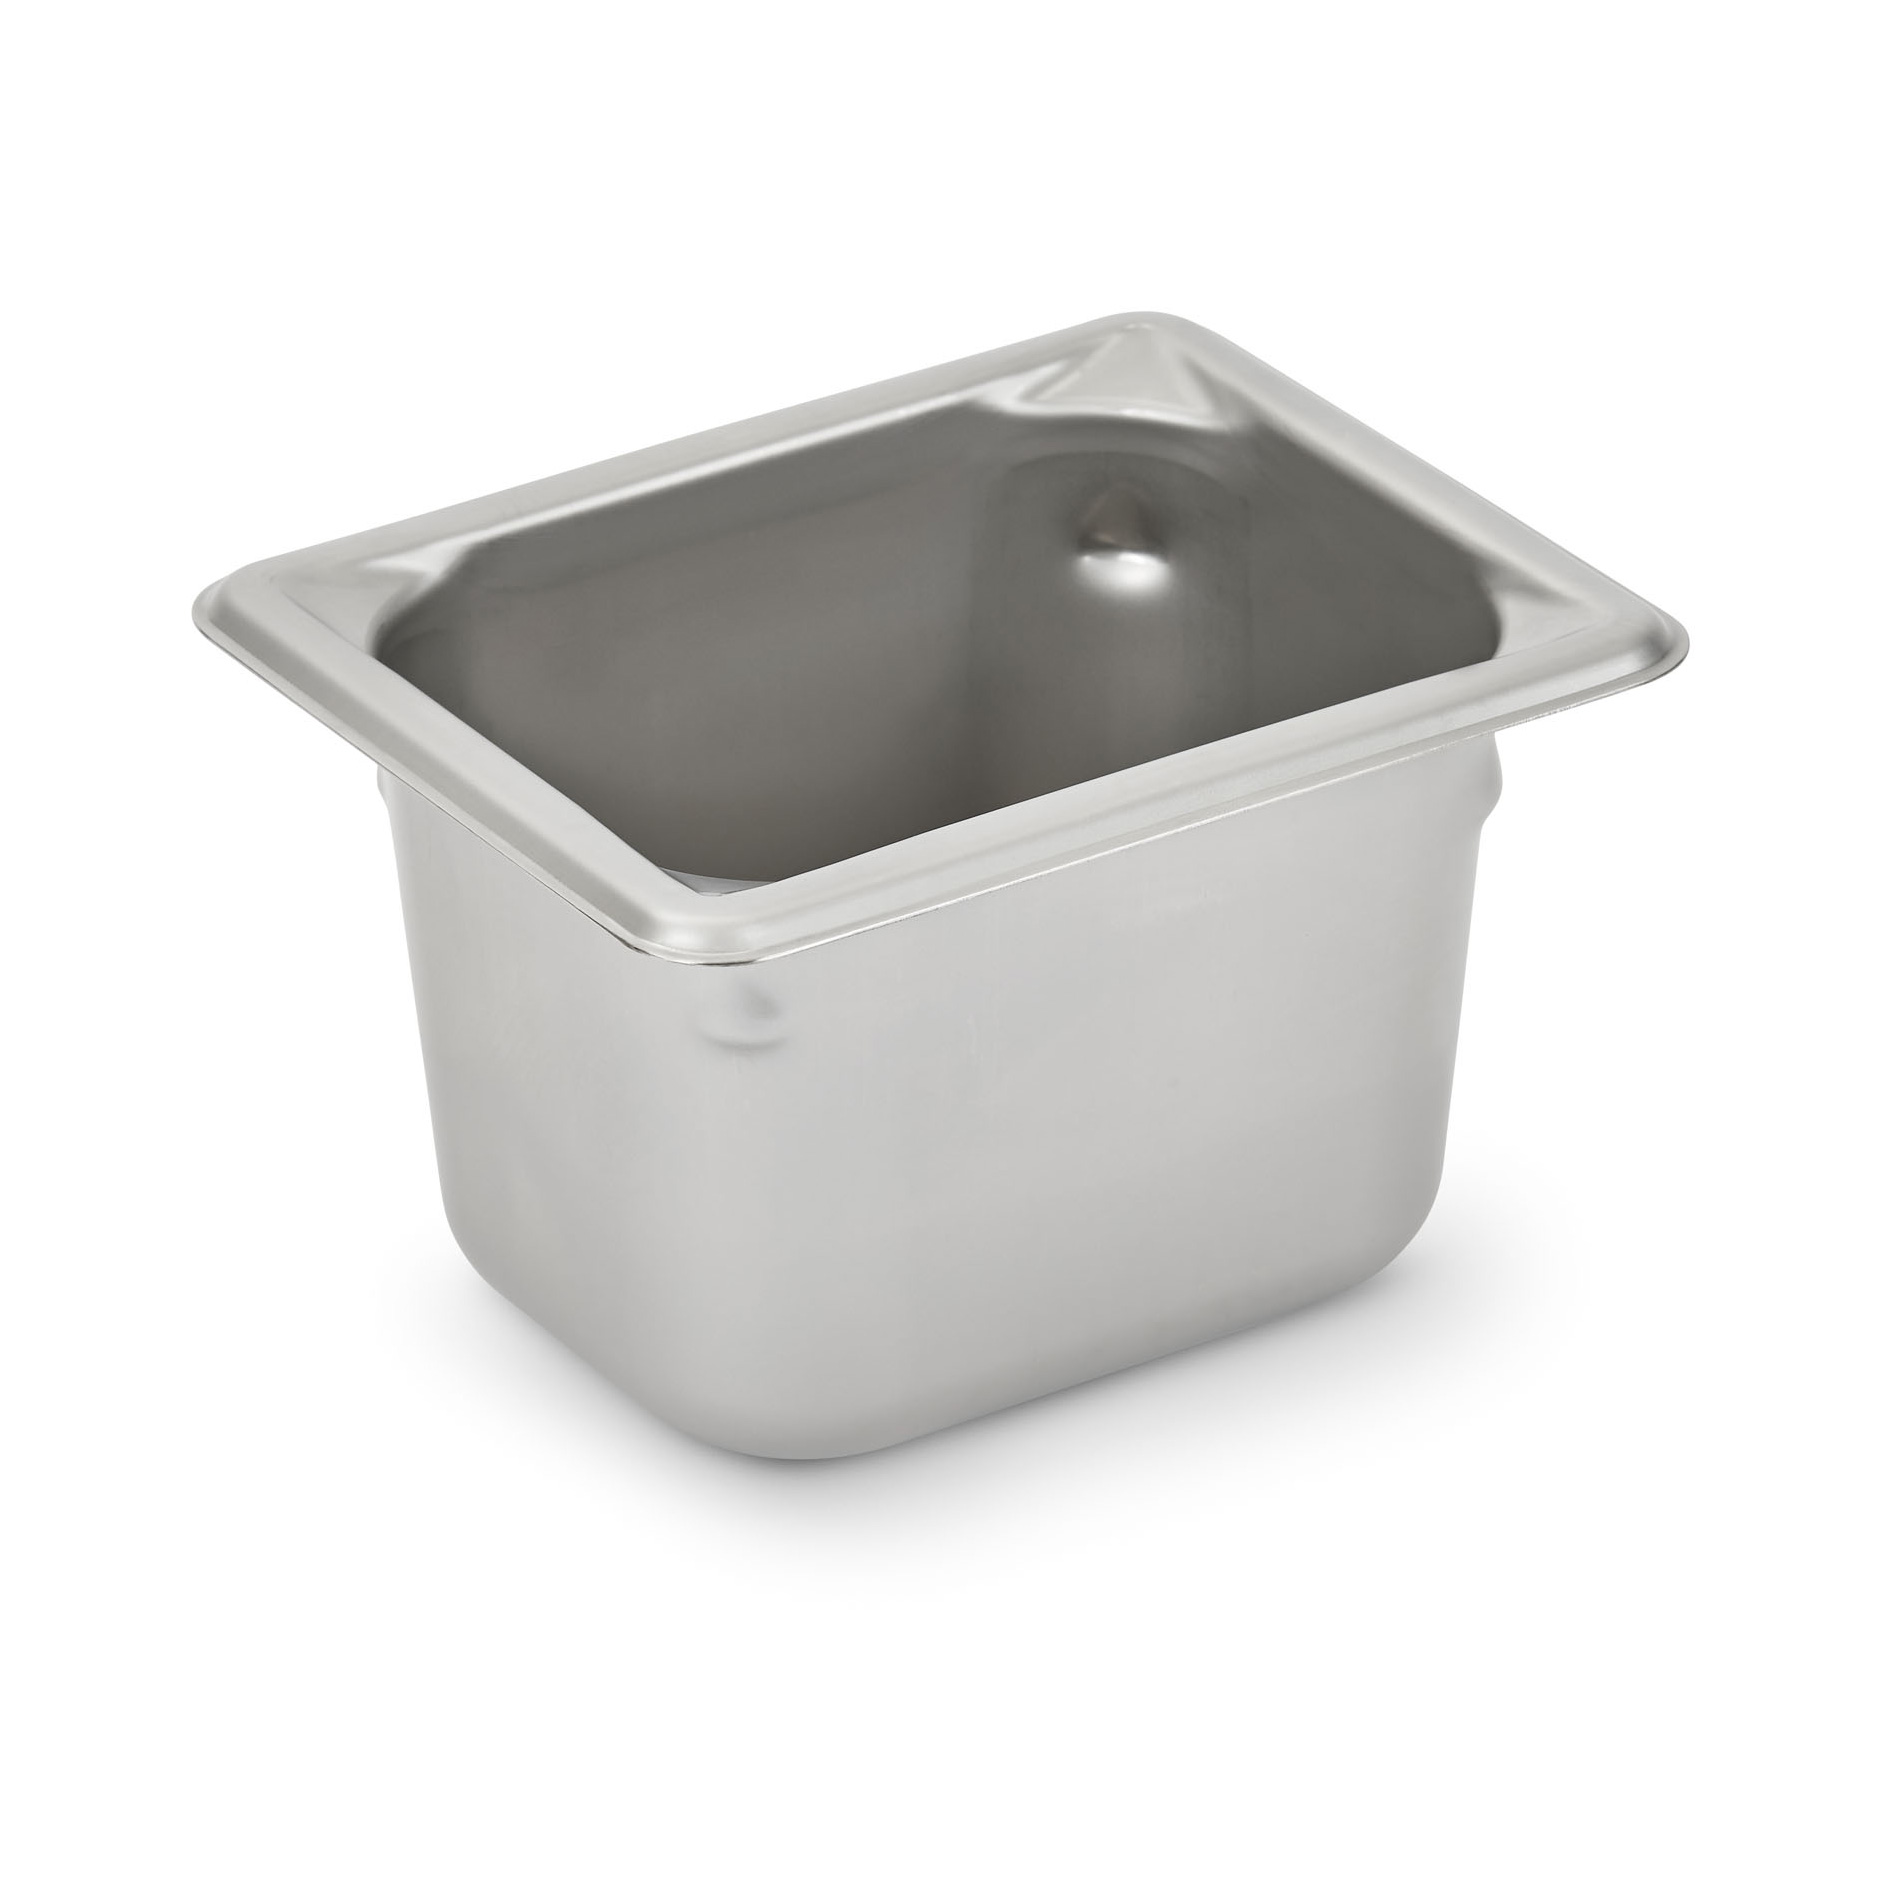 Vollrath 30842 steam table pan, stainless steel